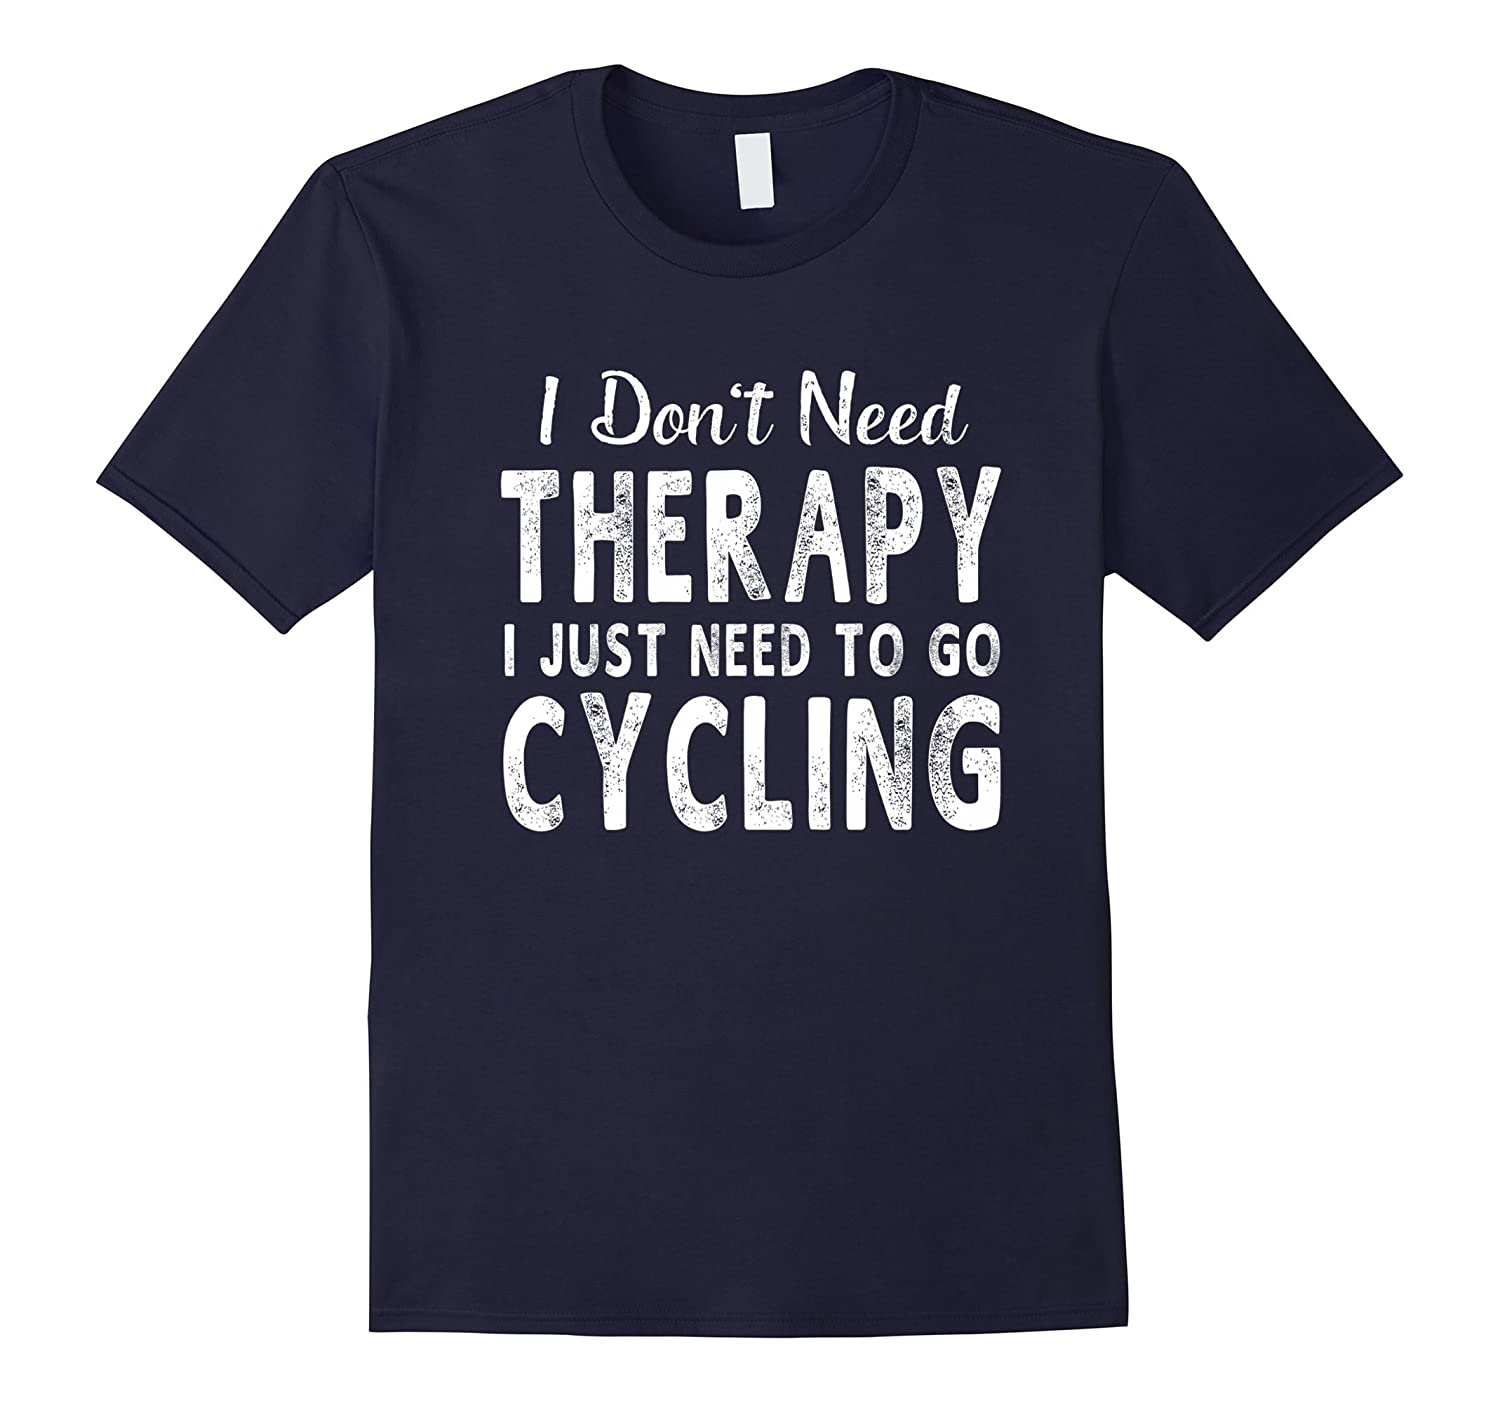 I Just Need To Go Cycling T-Shirt Women Men Funny Cycle Gift-Vaci